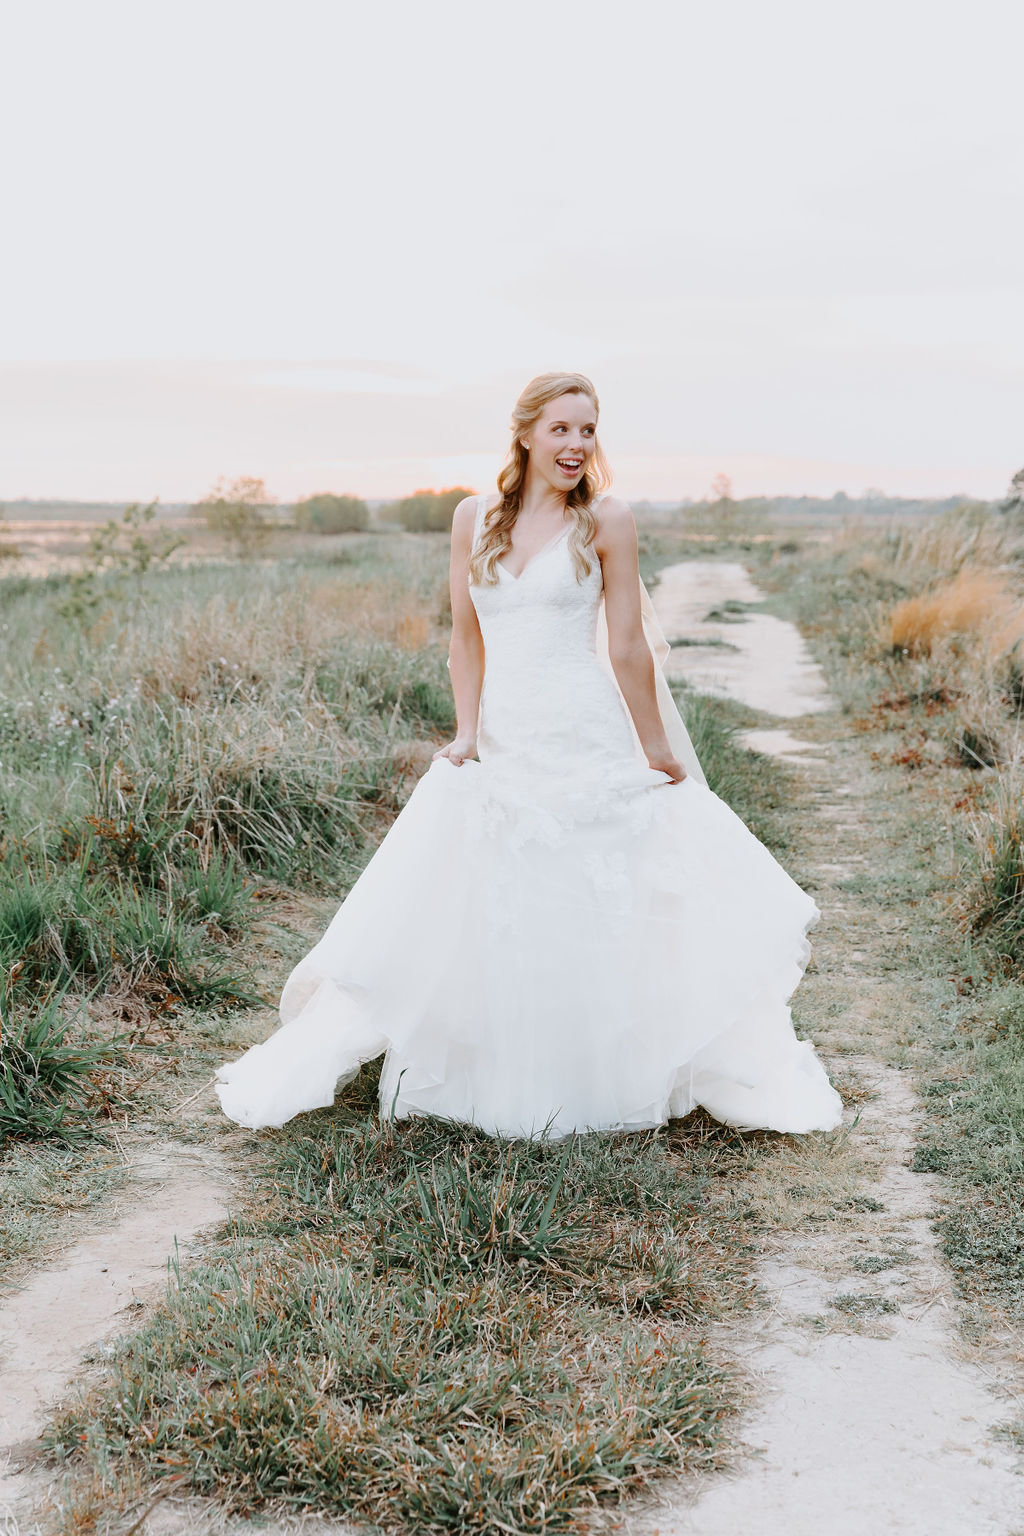 Chelsea-wildlifebasin-bridal-portraits-charleston(1)